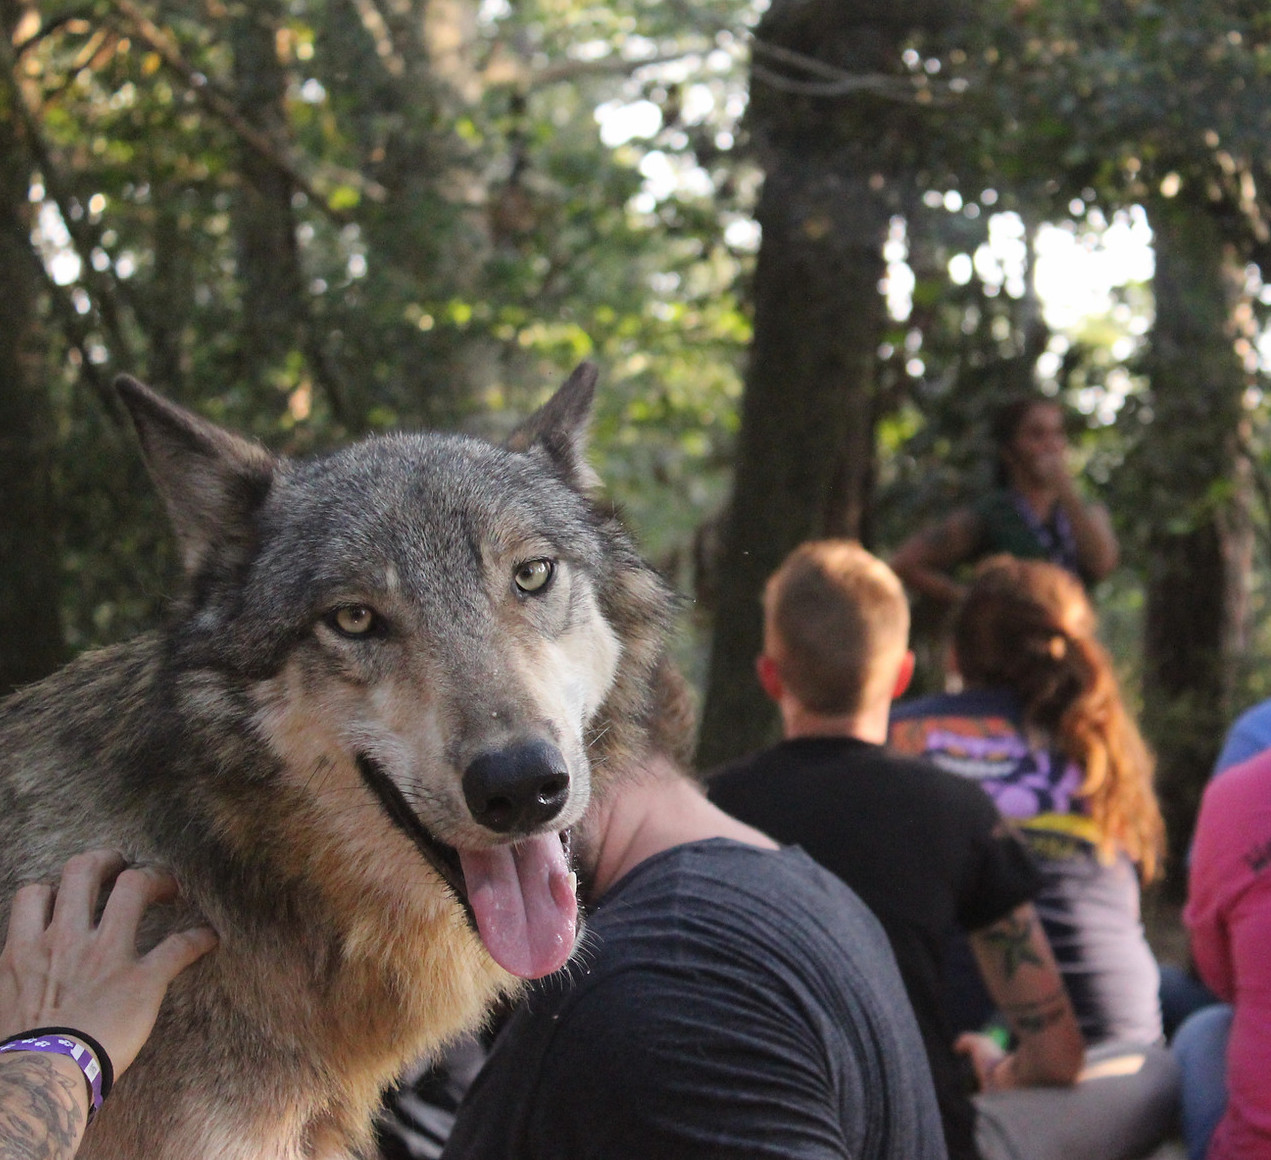 A wolf smiling while being petted.